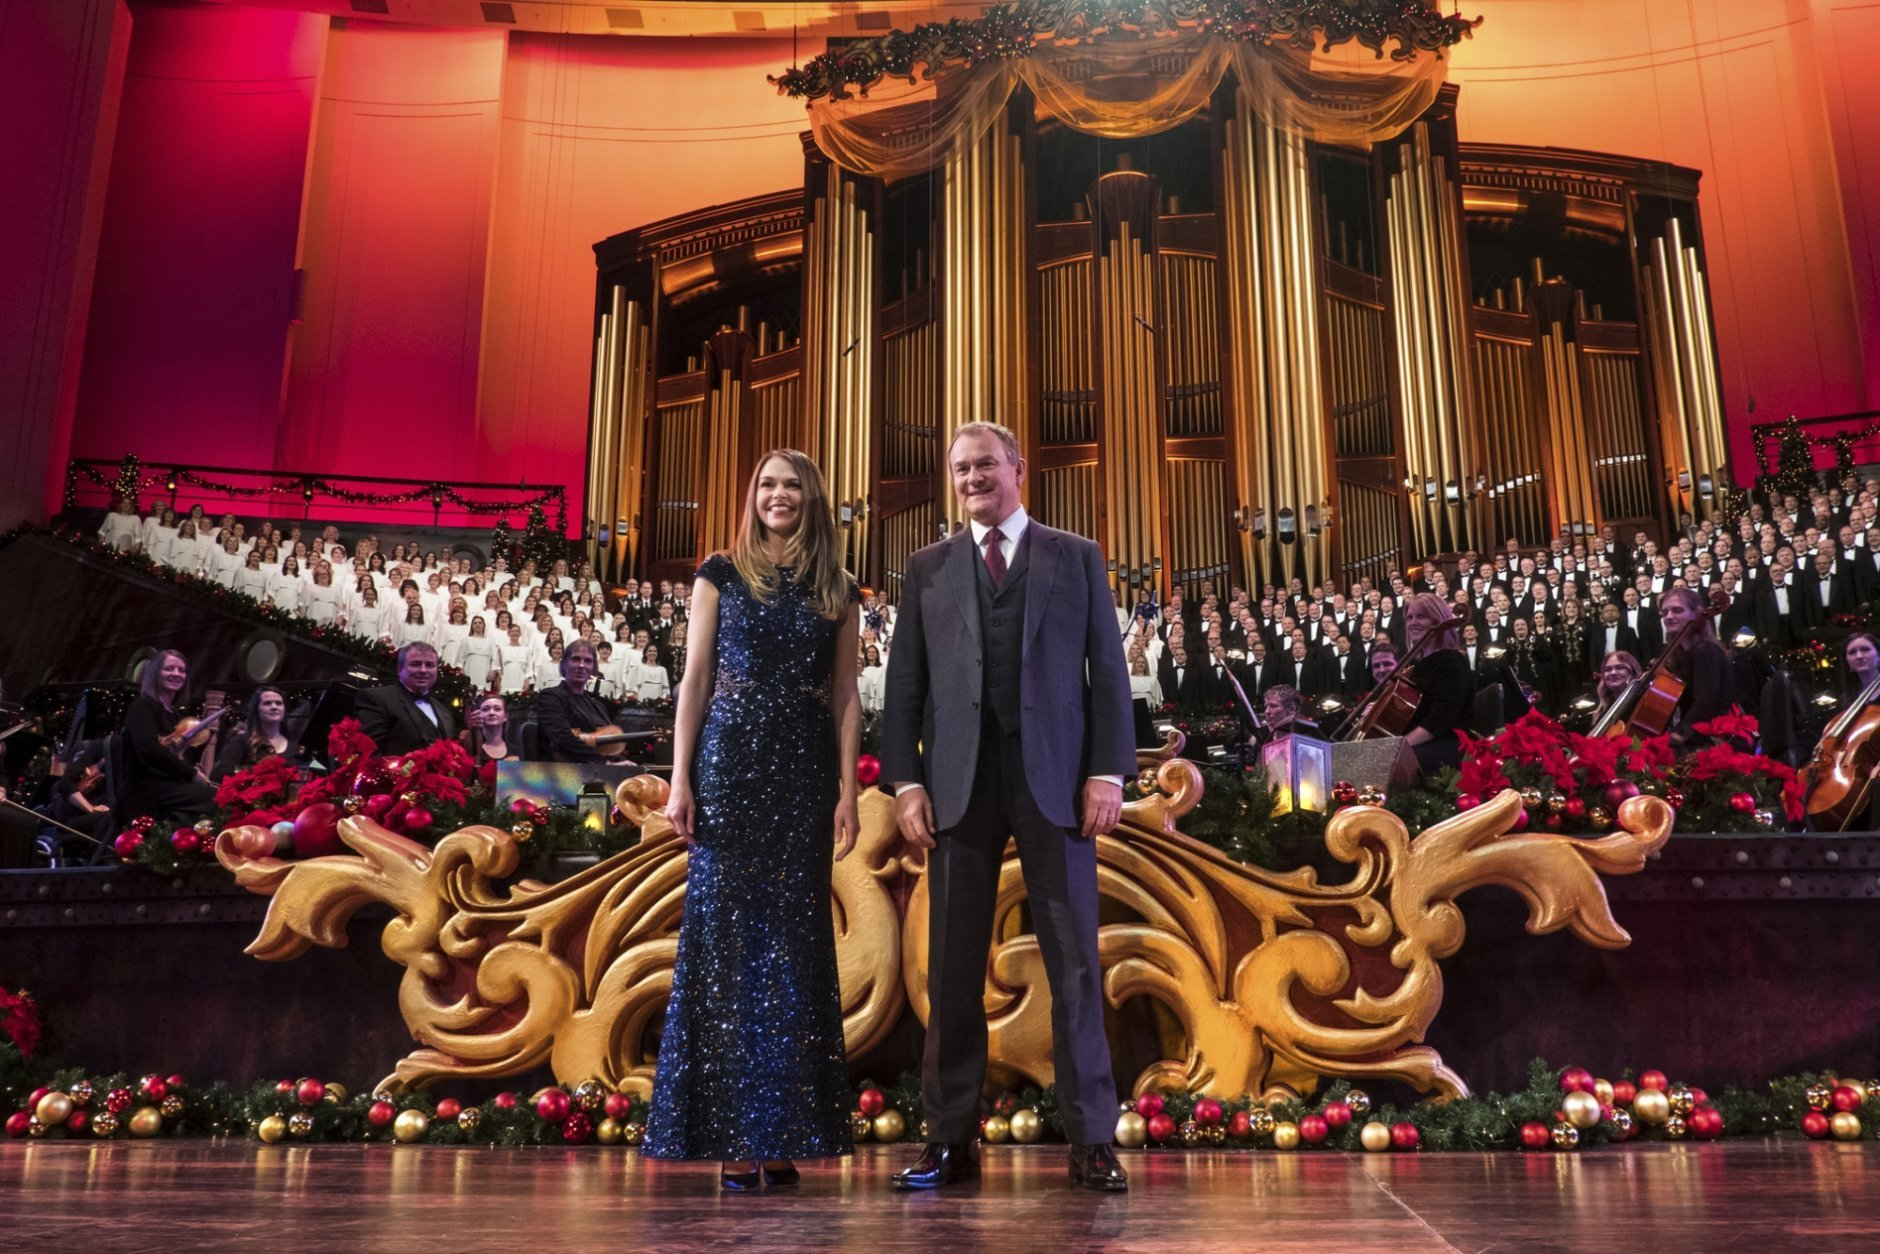 """This image released by PBS shows actors Sutton Foster, foreground left, and Hugh Bonneville, in """"Christmas with the Mormon Tabernacle Choir Featuring Sutton Foster and Hugh Bonneville,"""" airing Monday, Dec. 17 on PBS. (Justin Hackworth/PBS via AP)"""